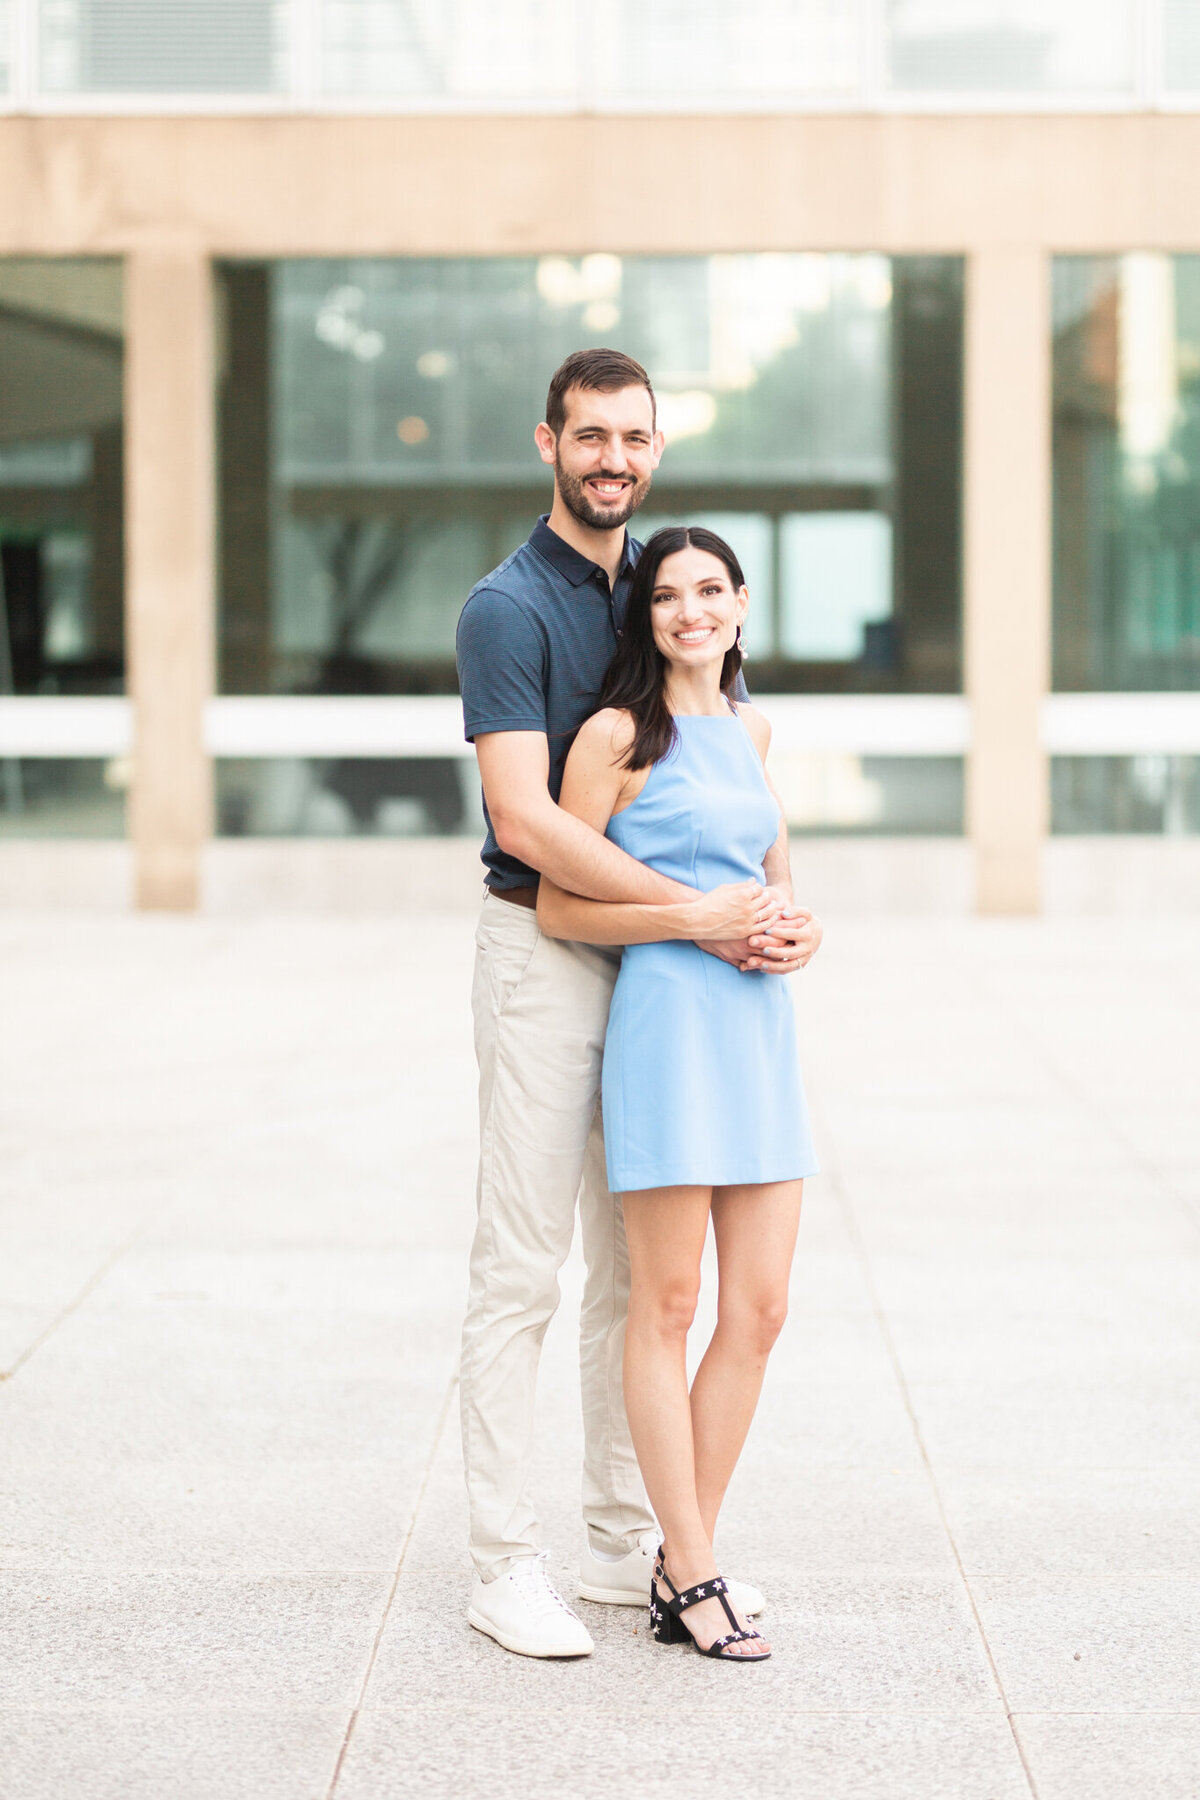 Zack & Hope Engagement Session in the Dallas Arts District Winspear Opera House & Meyerson Symphony Center | DFW Wedding & Portrait Photographer-8